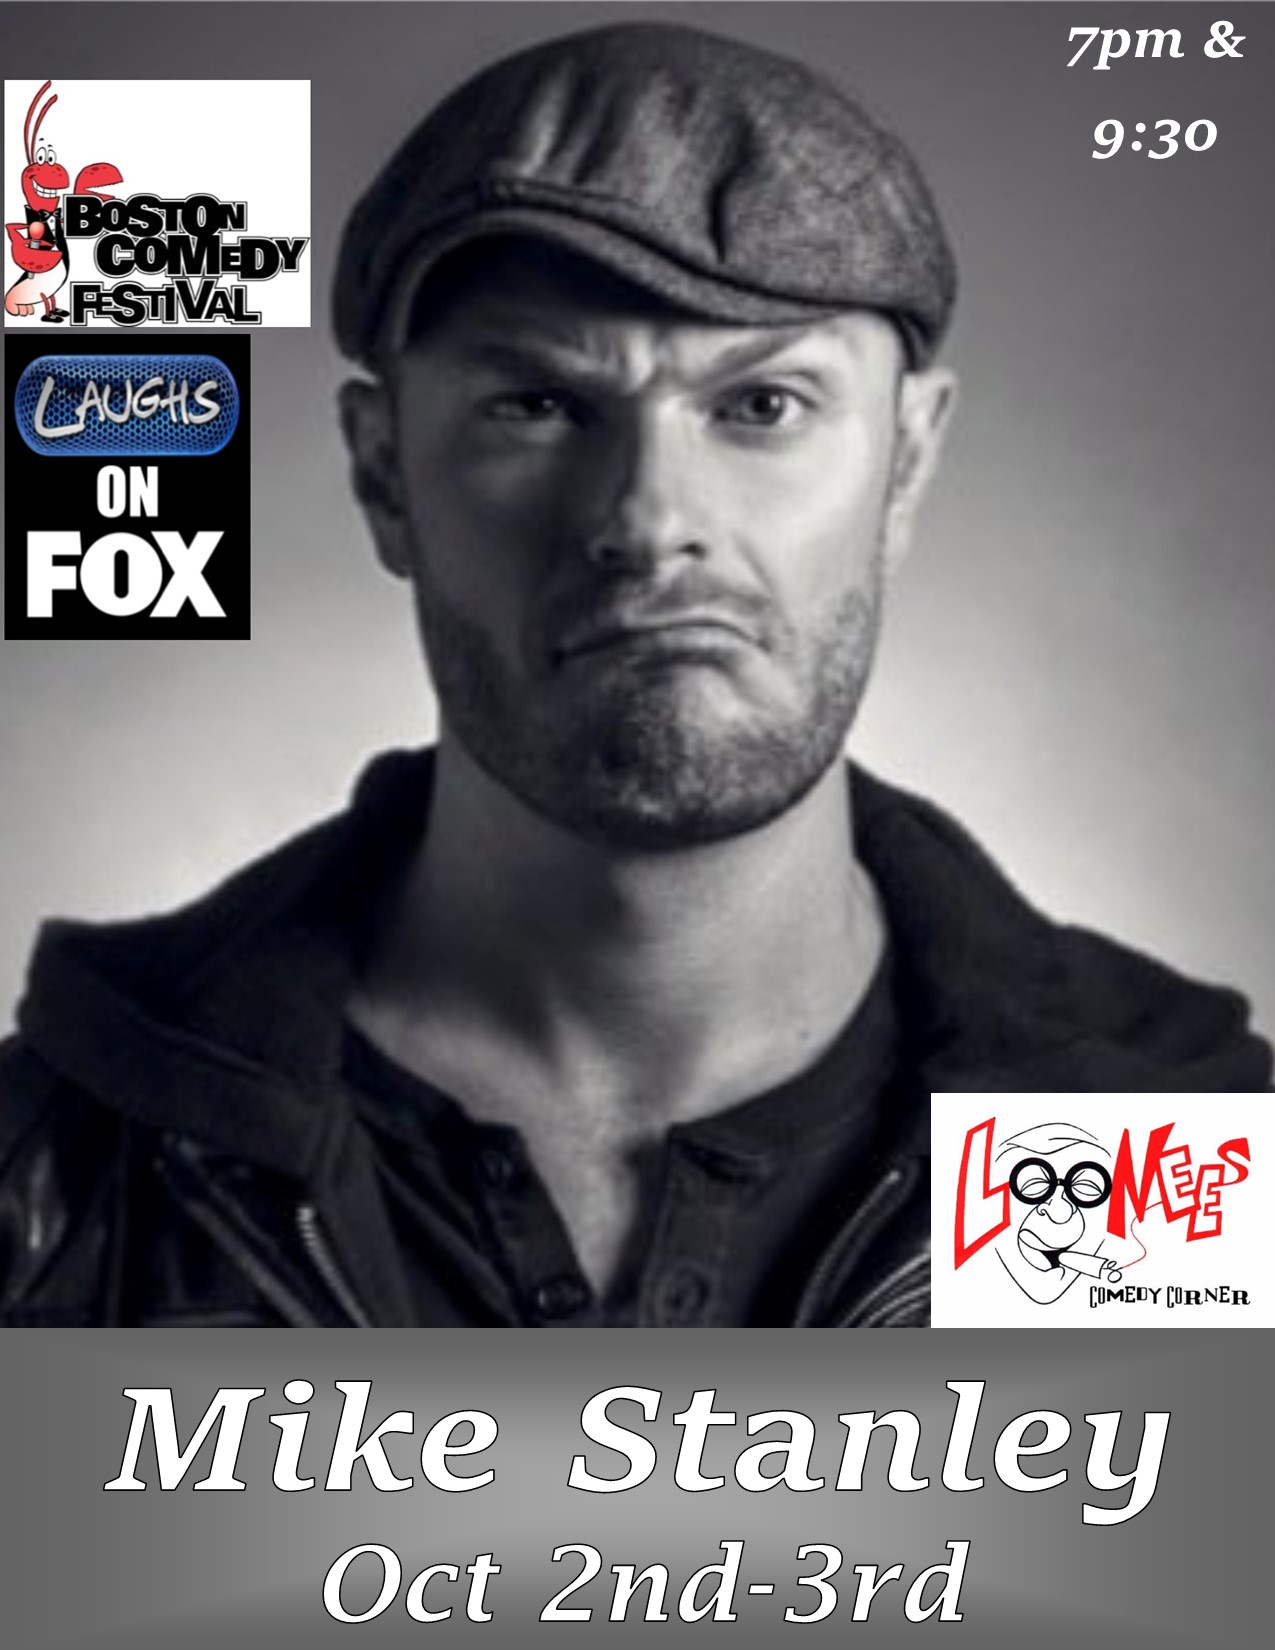 Mike Stanley